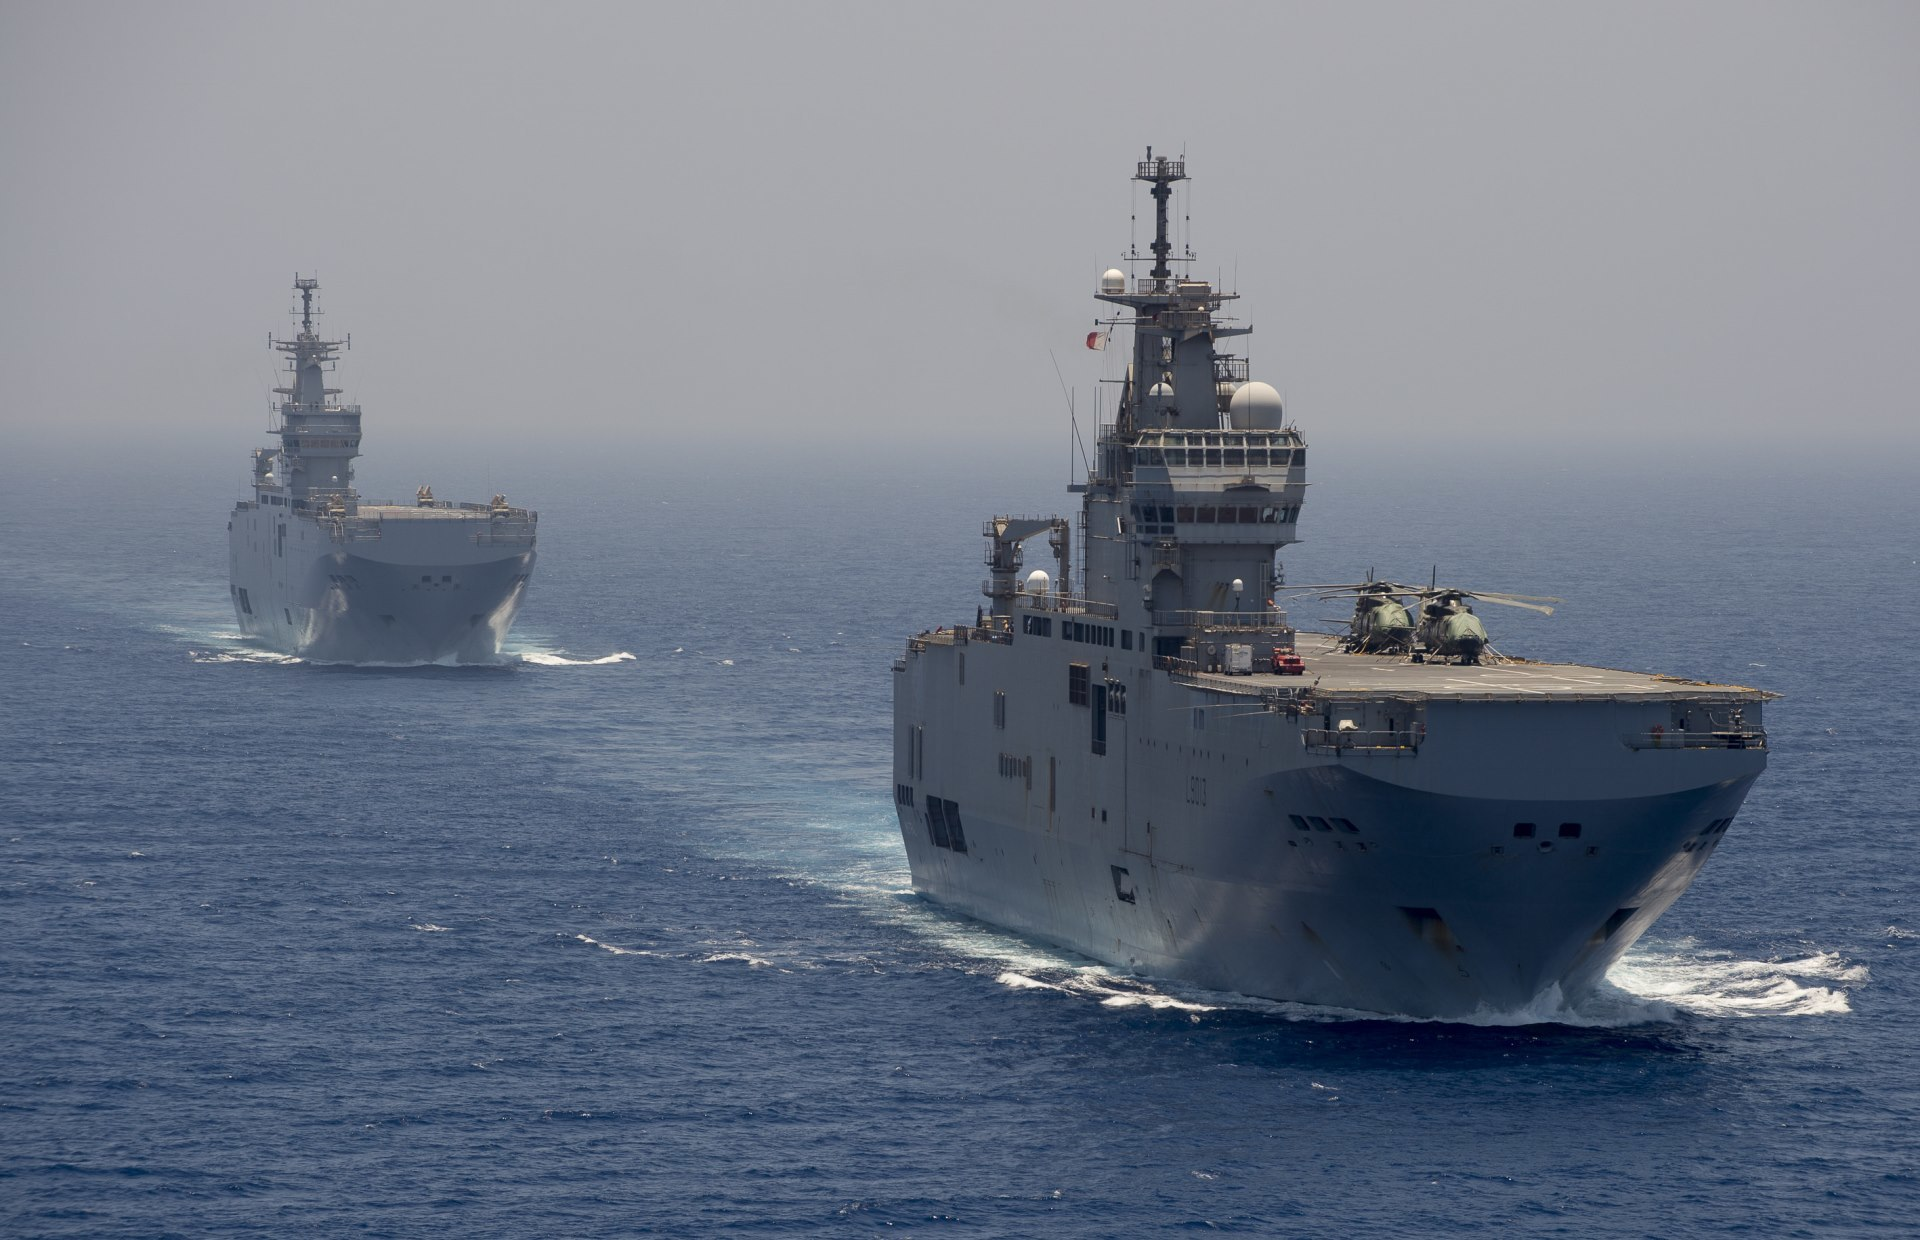 Egyptian Navy Using Avengers As Air Defense For Its